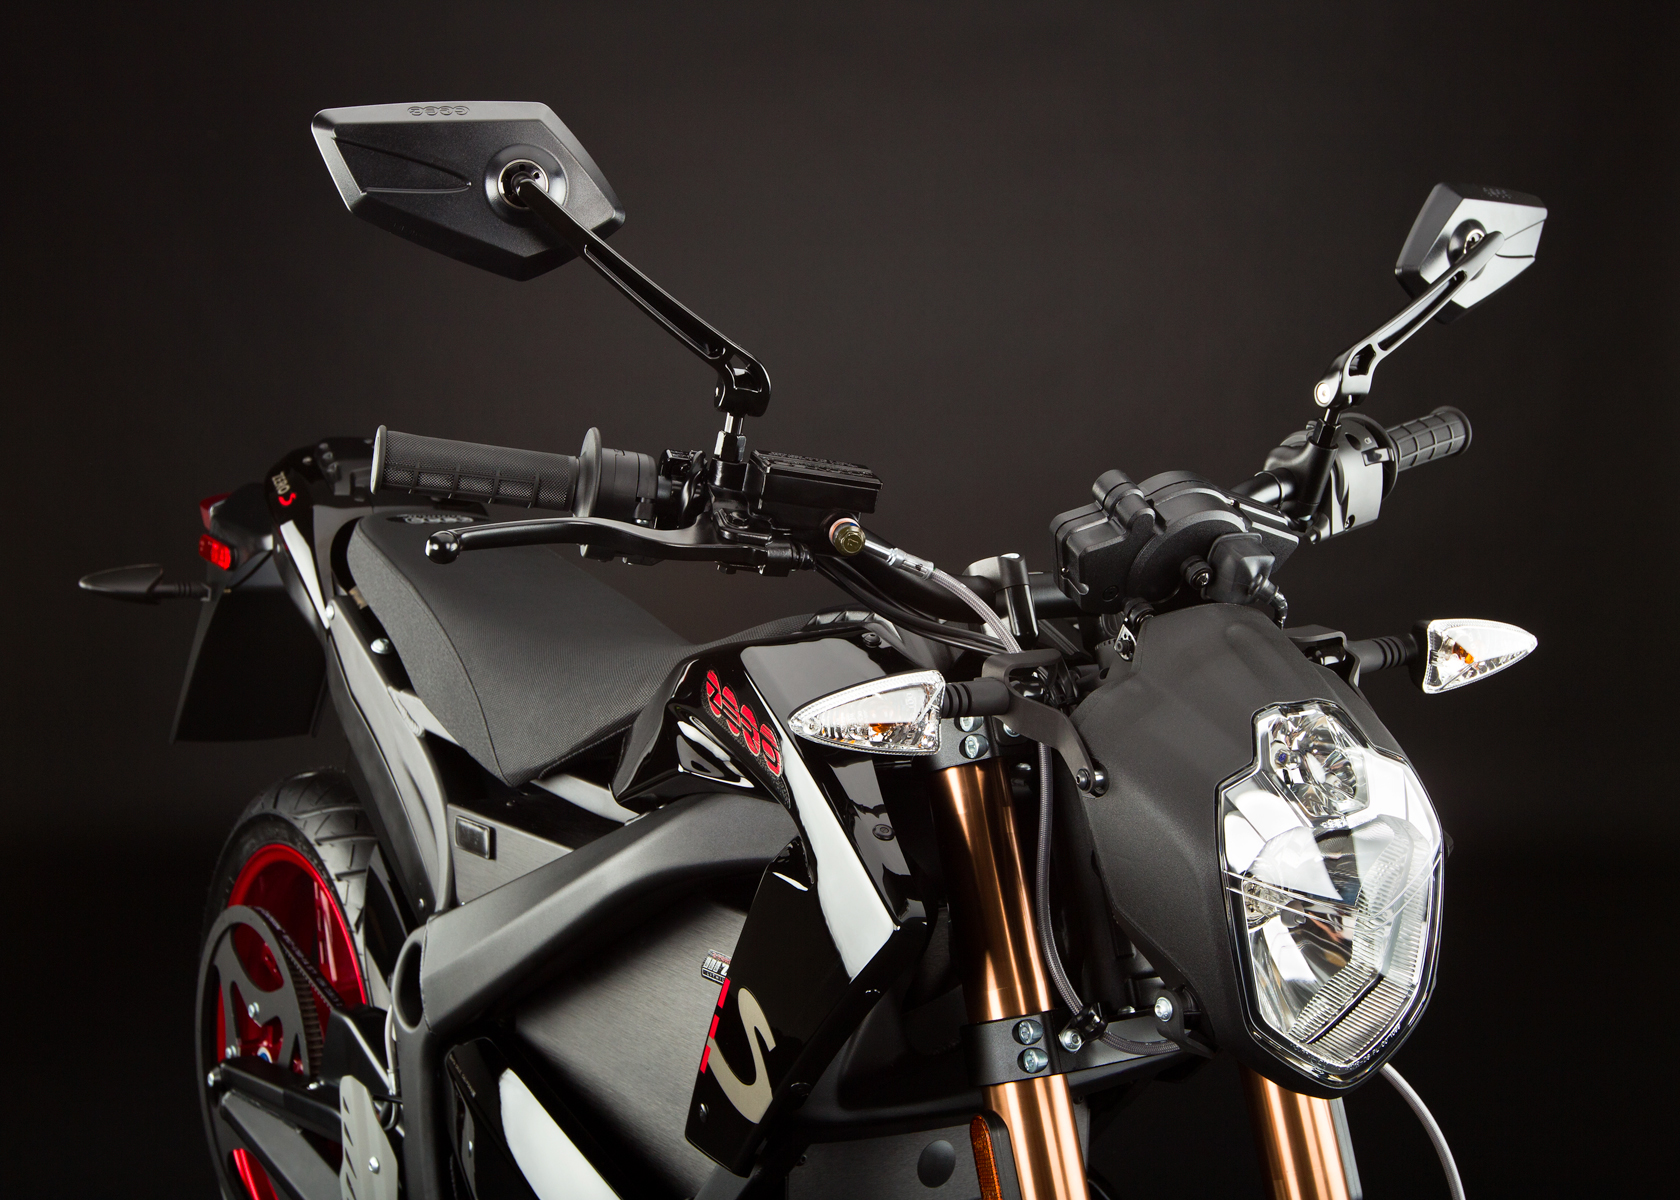 '.2012 Zero S Electric Motorcycle: Headlight.'